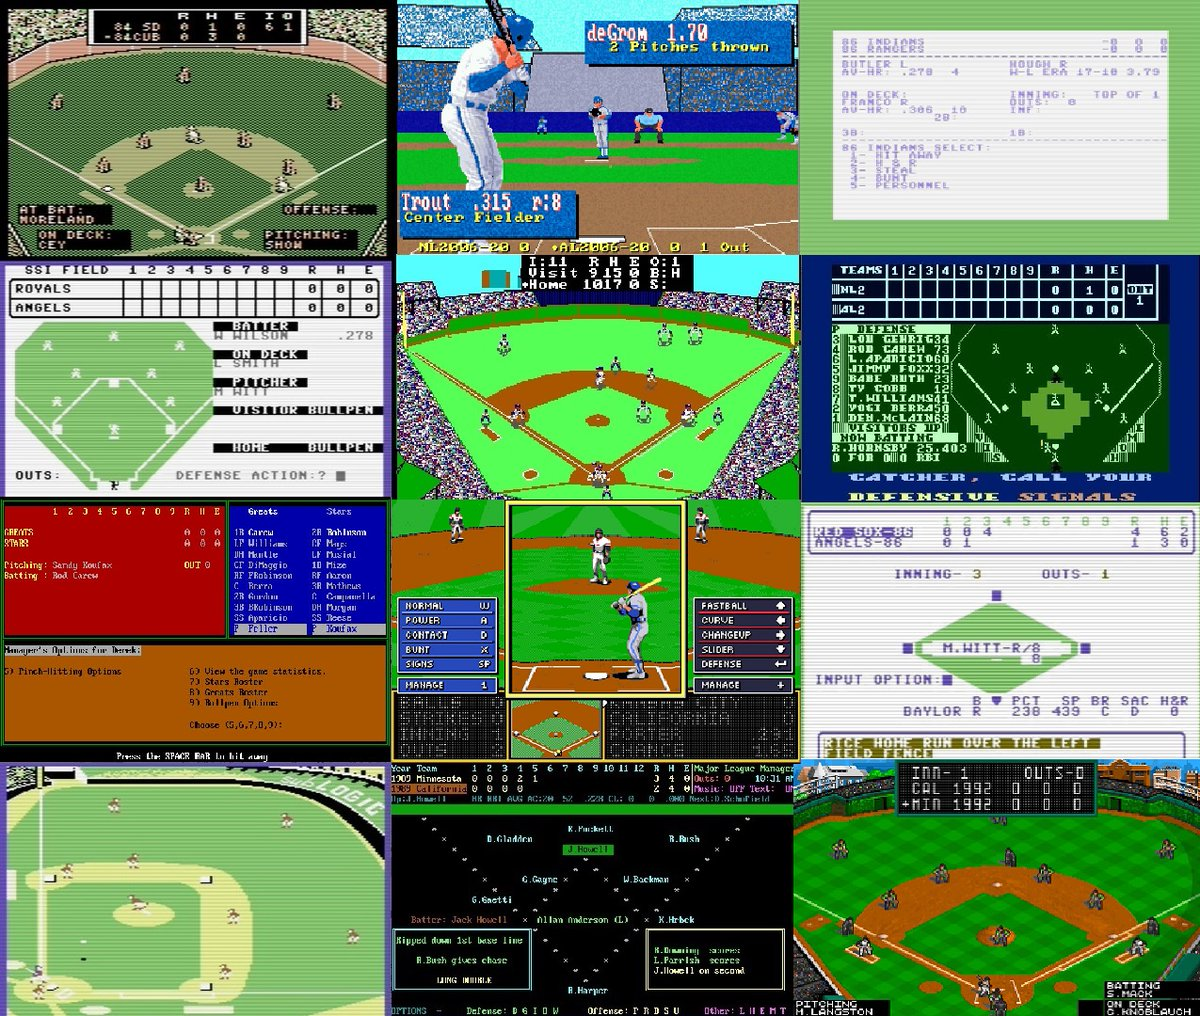 Retro reviews of classic computer baseball games  https://t.co/2bj2TUYjsy #retrogaming #atari #commodore #apple #ibm #macintosh #amiga #baseball #hardball #ssi #AvalonHill #MicroLeague #subLogic #ElectronicArts #LanceHaffner #Weaver #Stormfront #statisPro #stats #LaRussa https://t.co/w6jXw2aewb